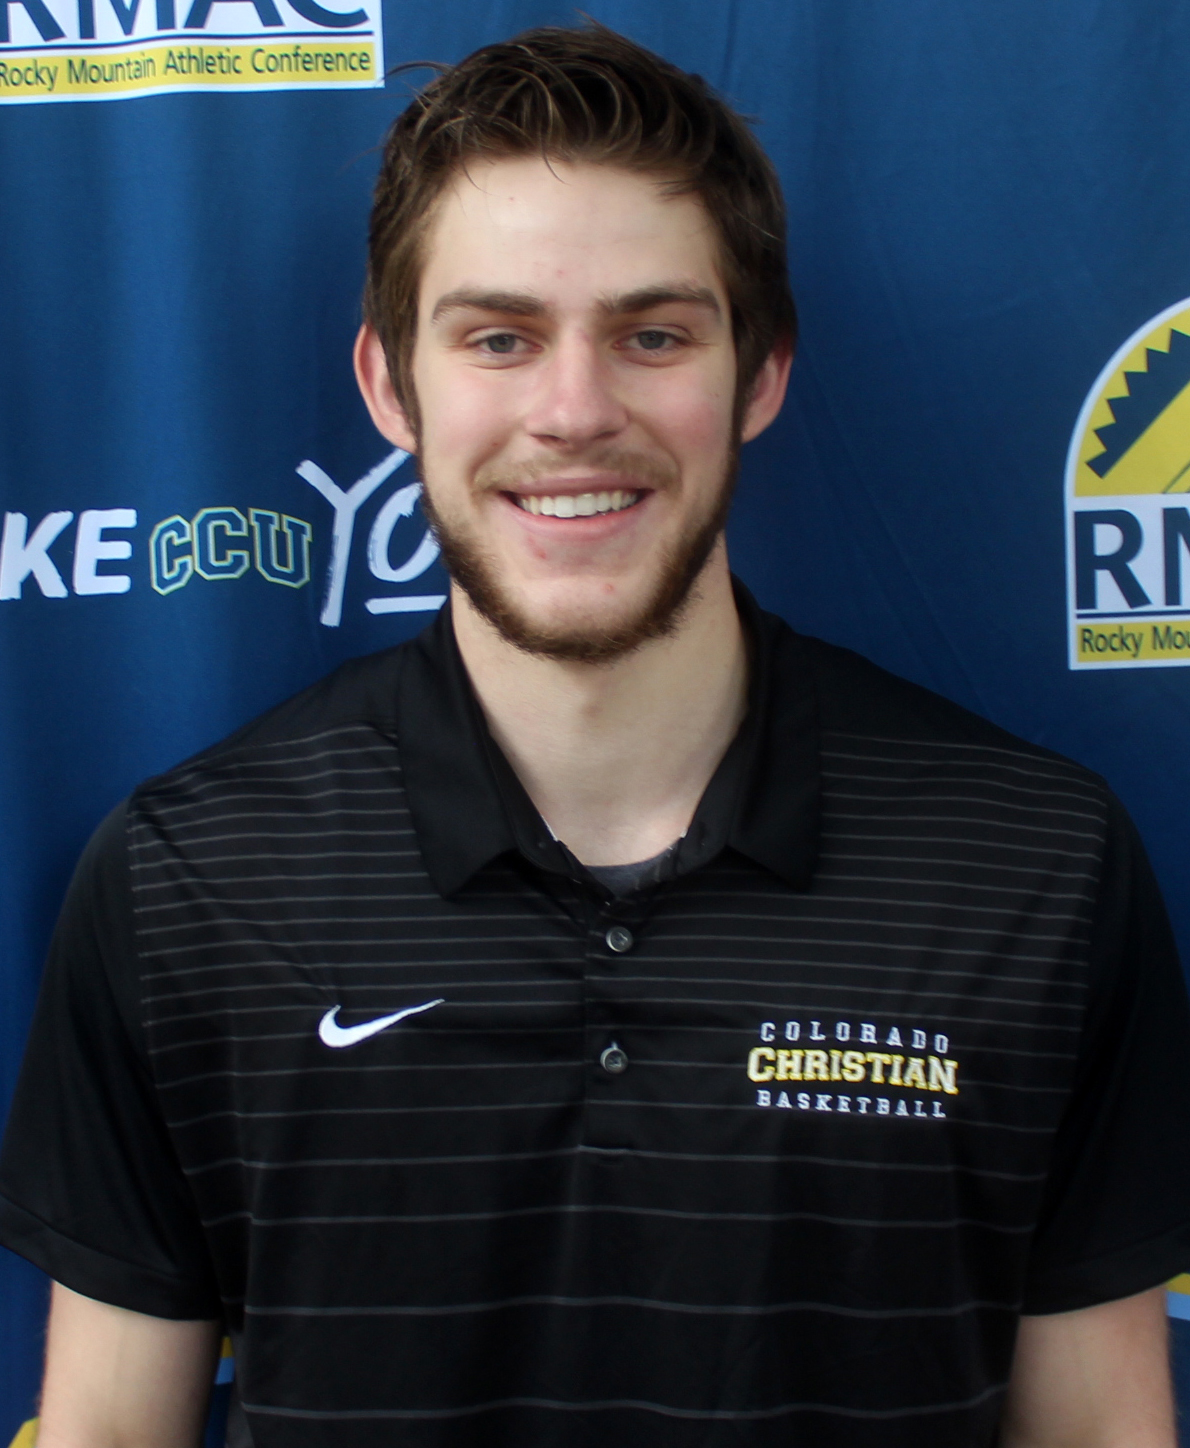 Marcus Fager 2018 2019 Men S Basketball Colorado Christian University Athletics Co host of last podcast on the left, no dogs in space open.spotify.com/episode/6iraqcemkorszxwwwi9qed?si=l8wod_p5ruambut2zy2rag. marcus fager 2018 2019 men s